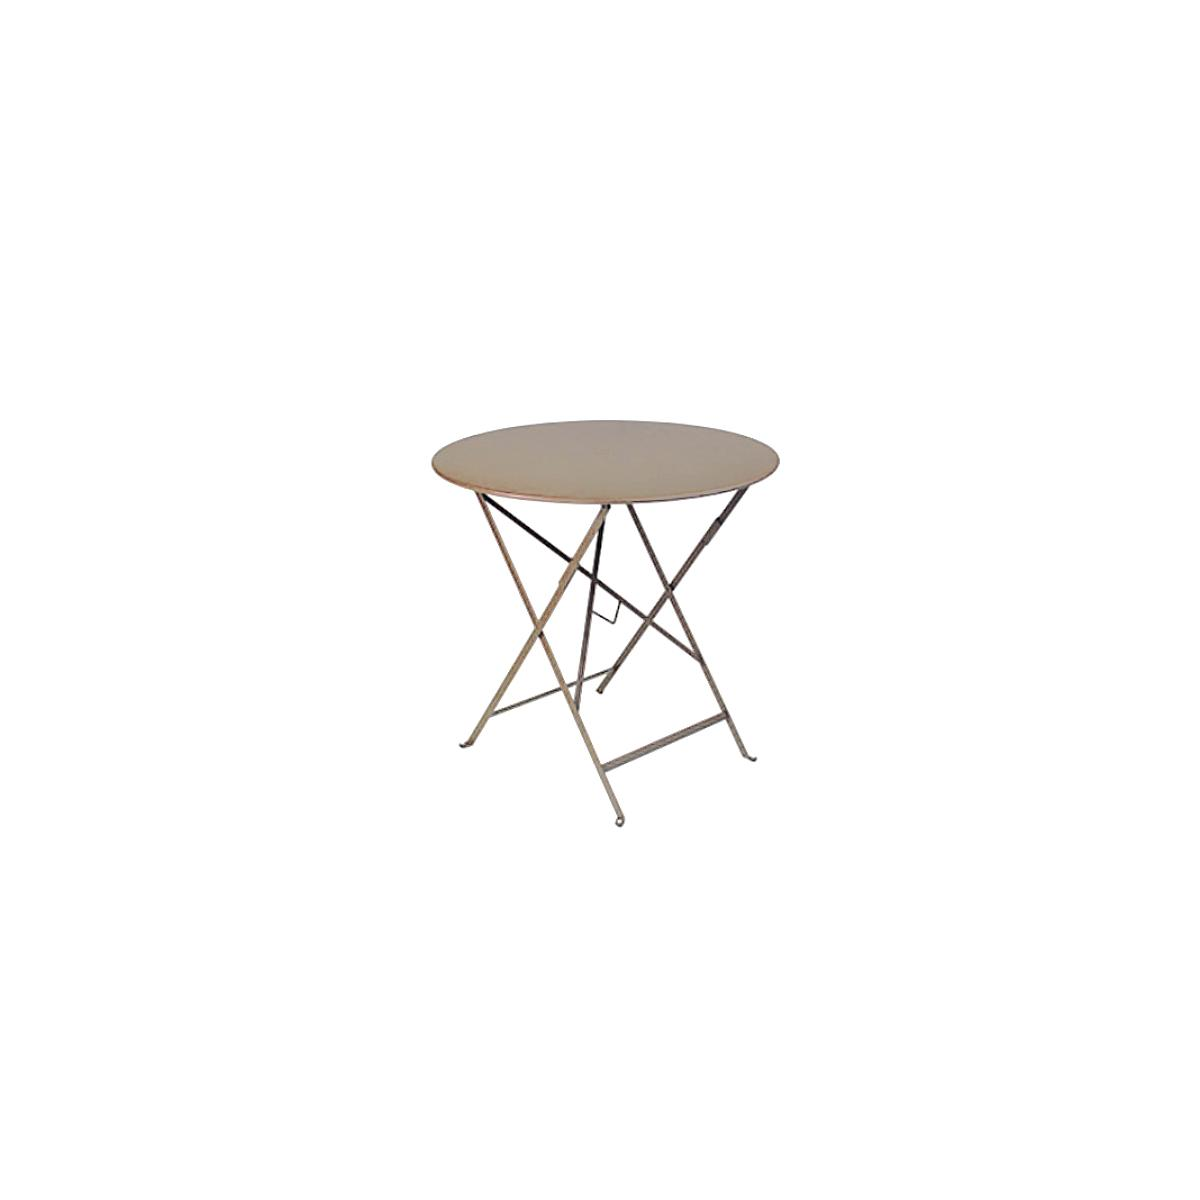 BISTRO by Fermob Table ronde brun muscade